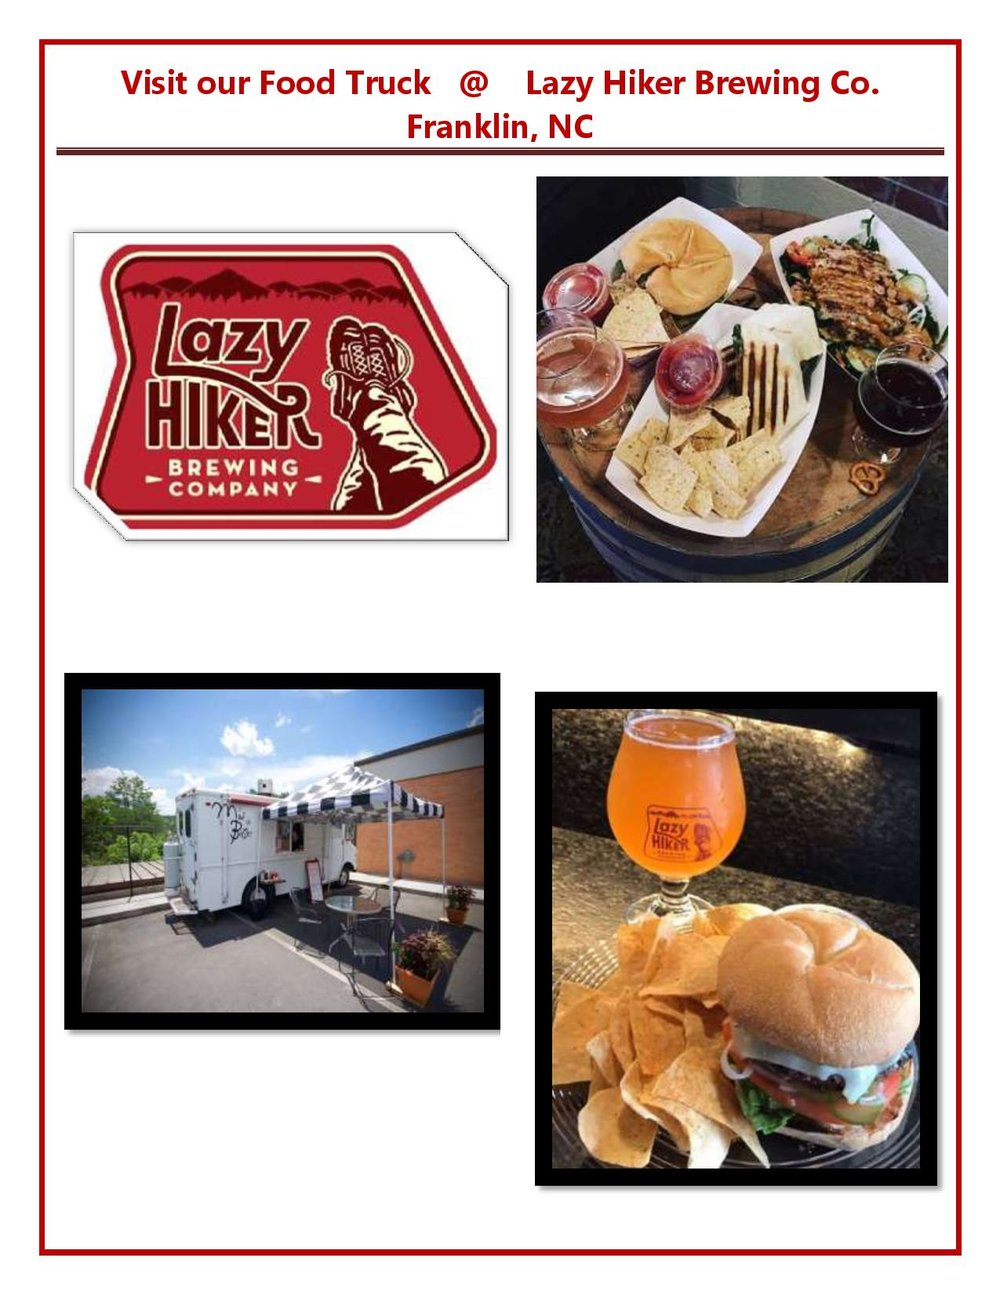 Food Truck-Lazy Hiker Ad-page-001.jpg